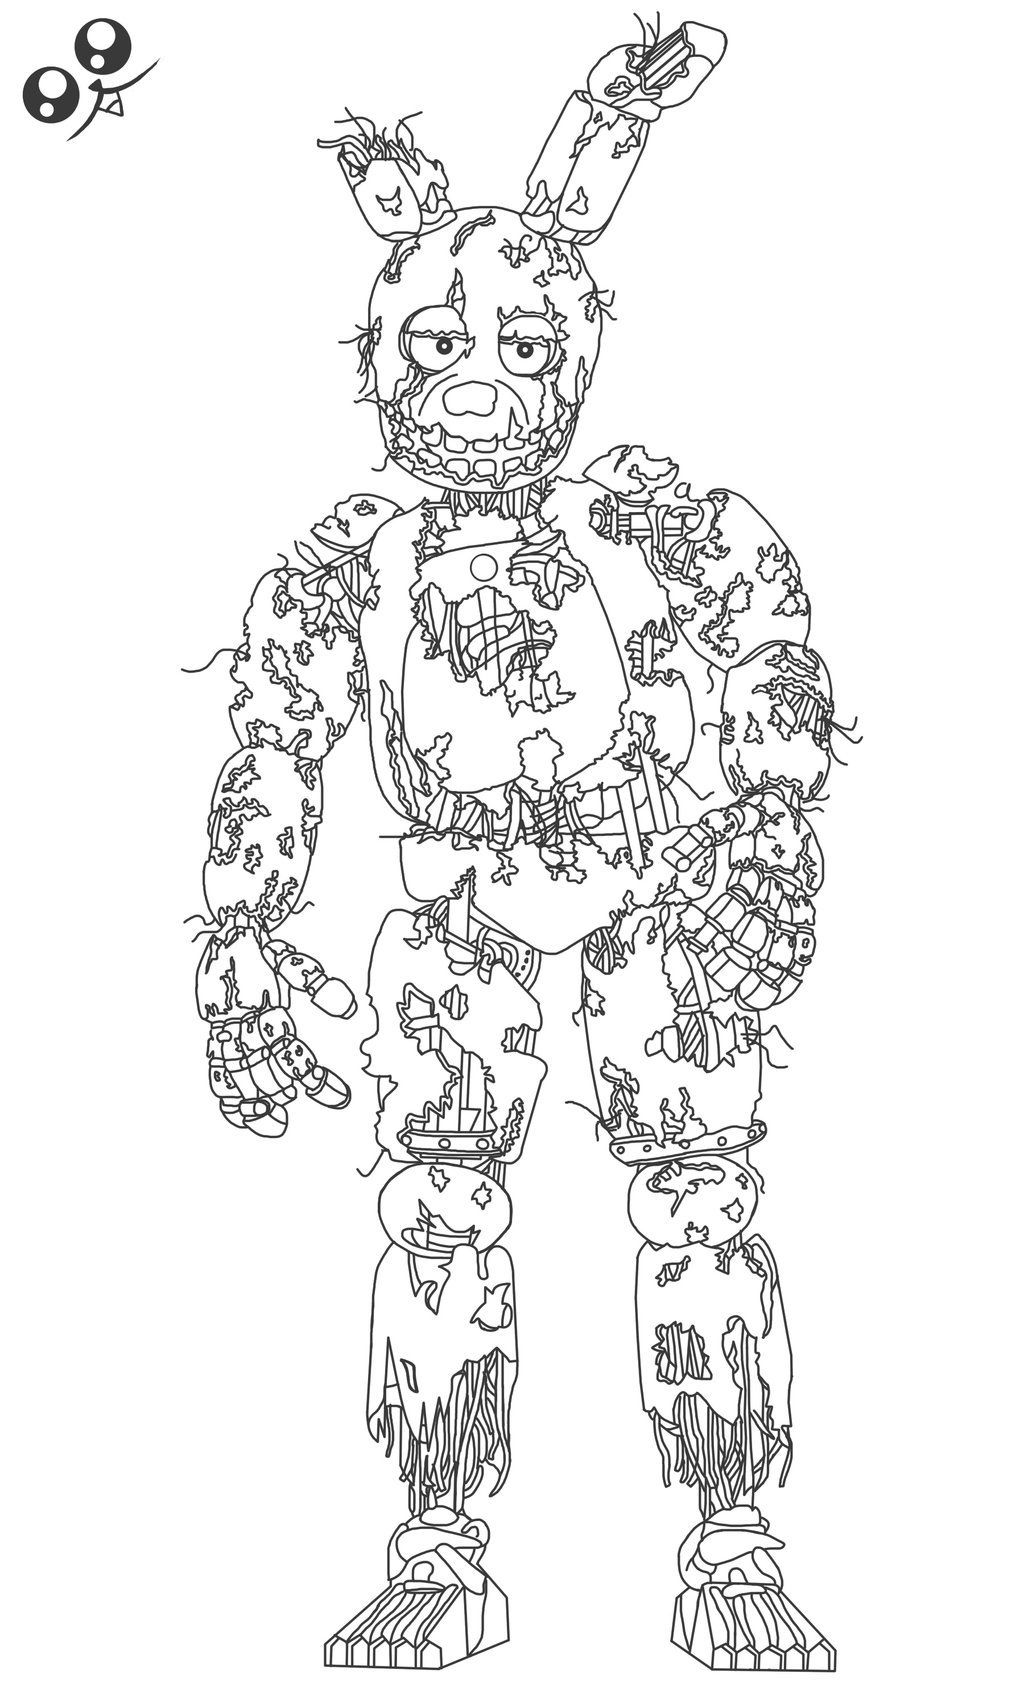 Spring Trap Coloring Page Fnaf Coloring Pages Cartoon Coloring Pages Puppy Coloring Pages